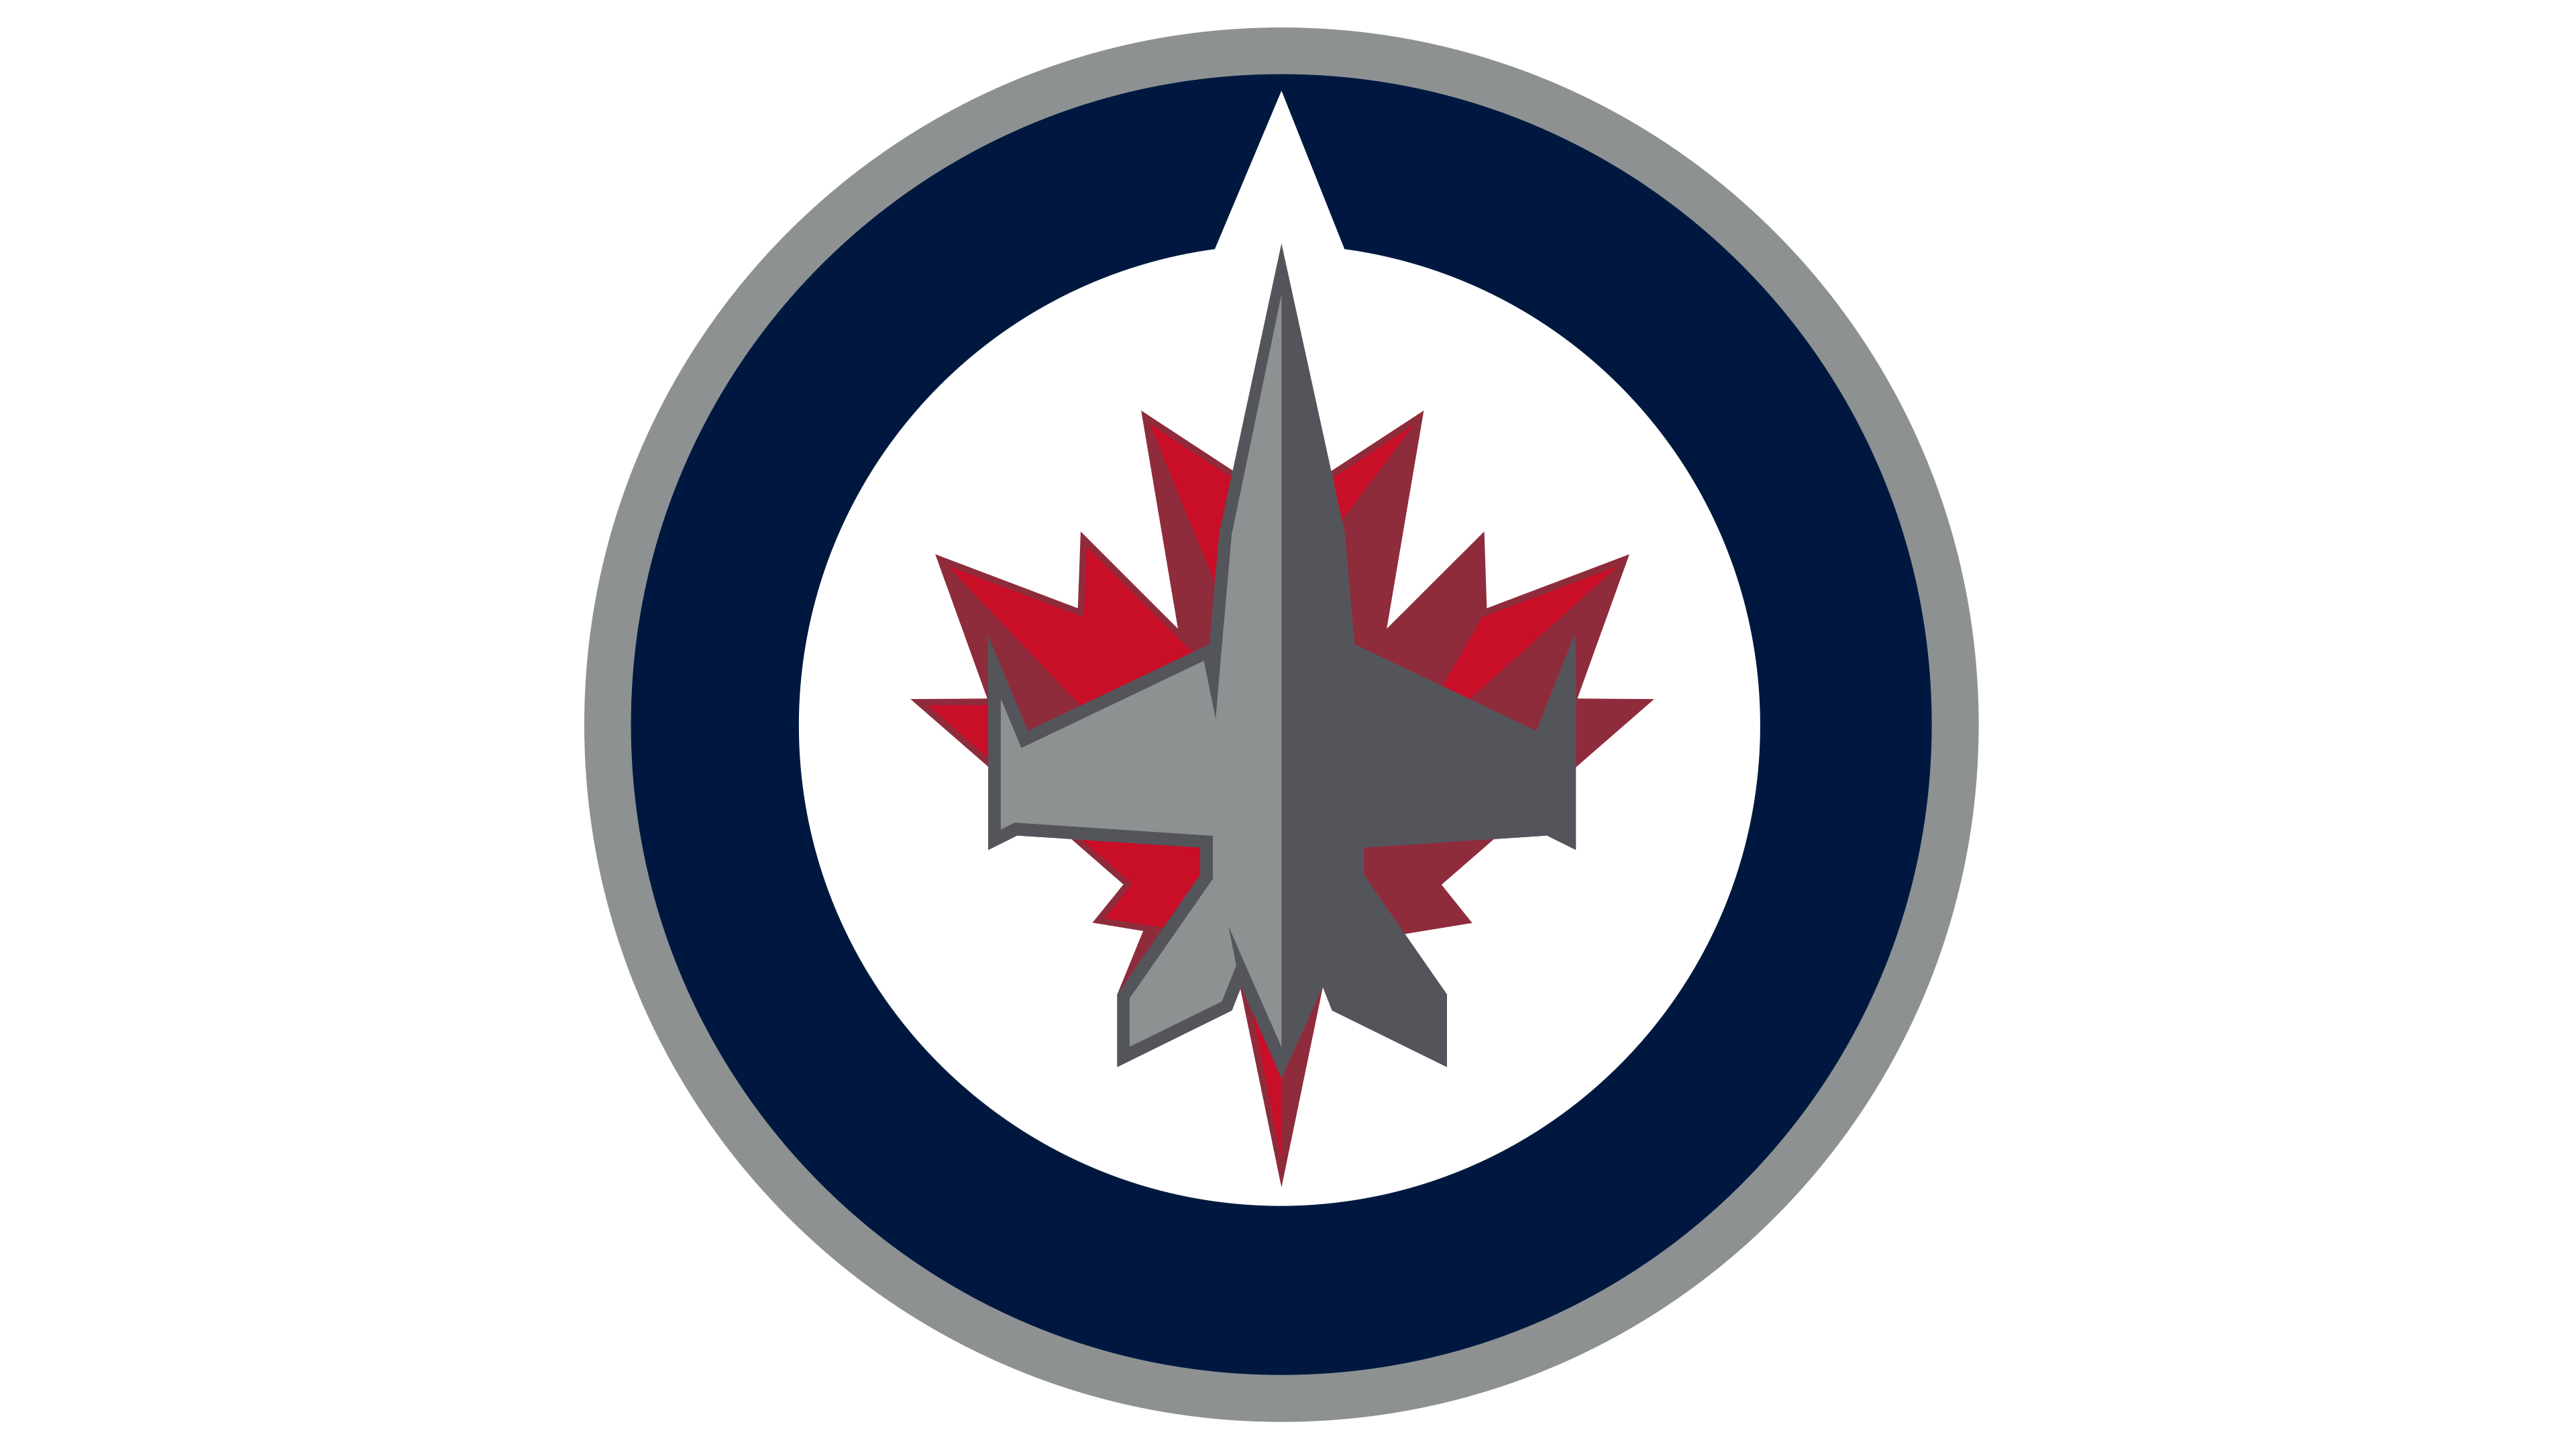 Winnipeg Jets logo